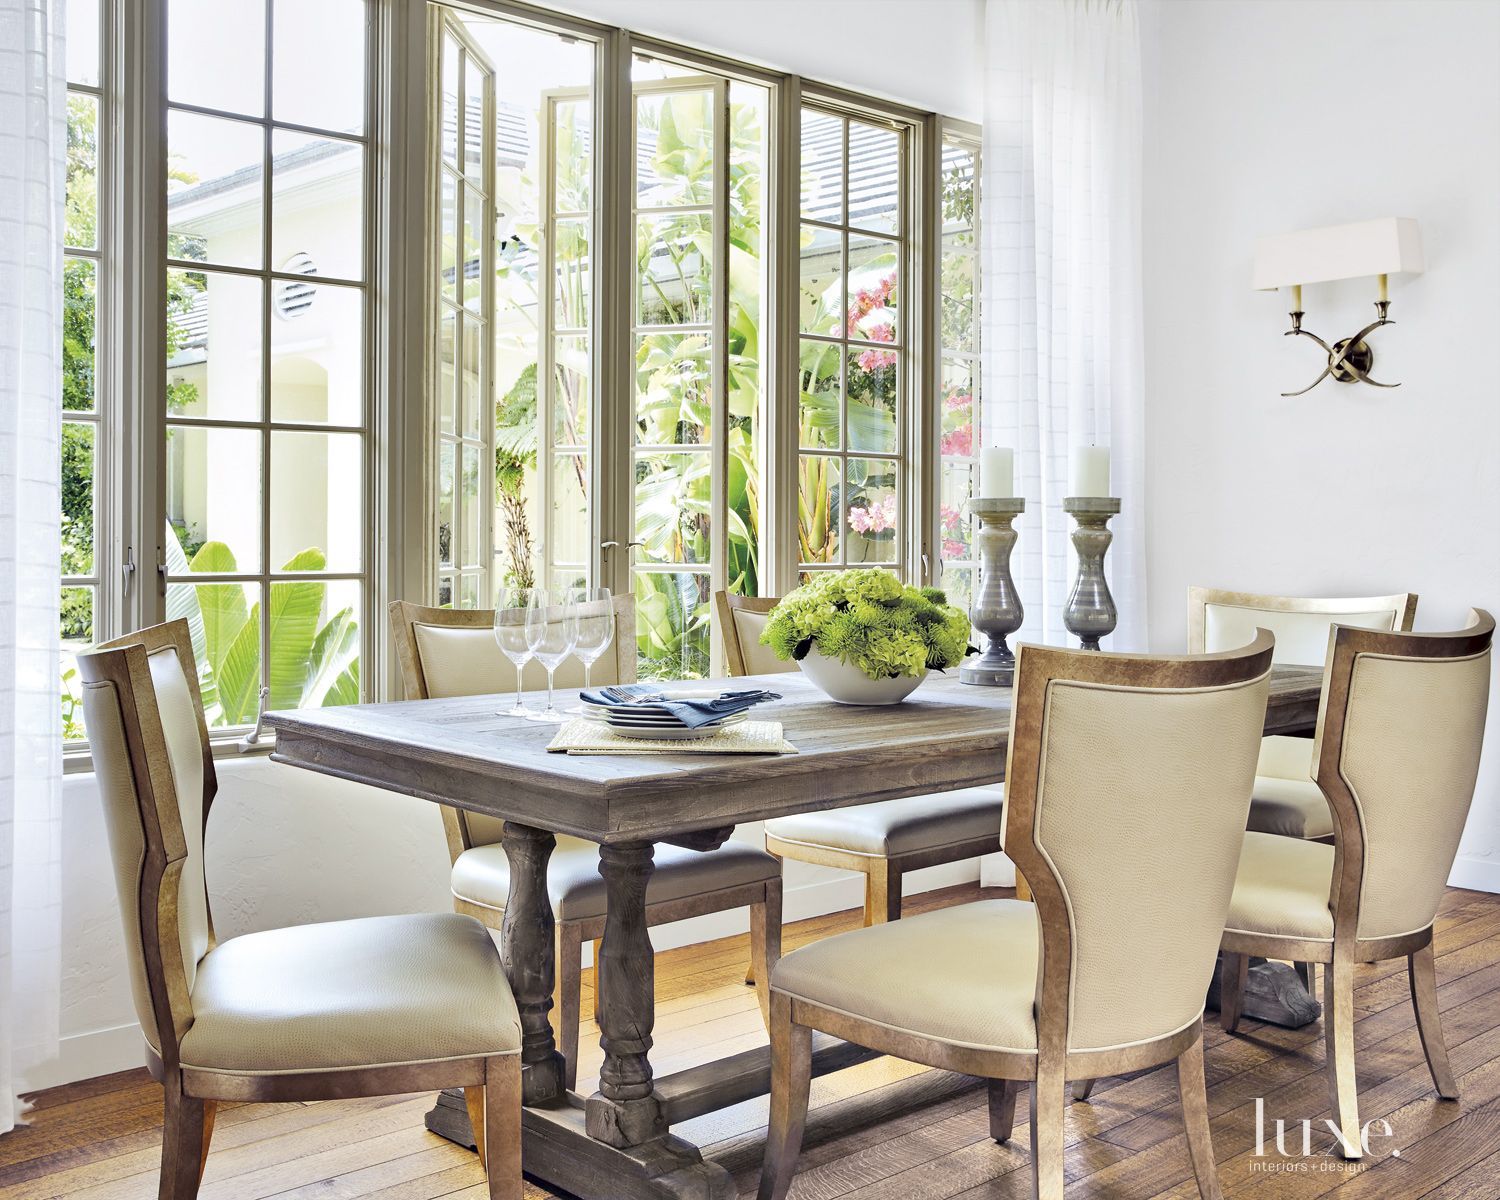 Traditional White Dining Room with Trestle Table